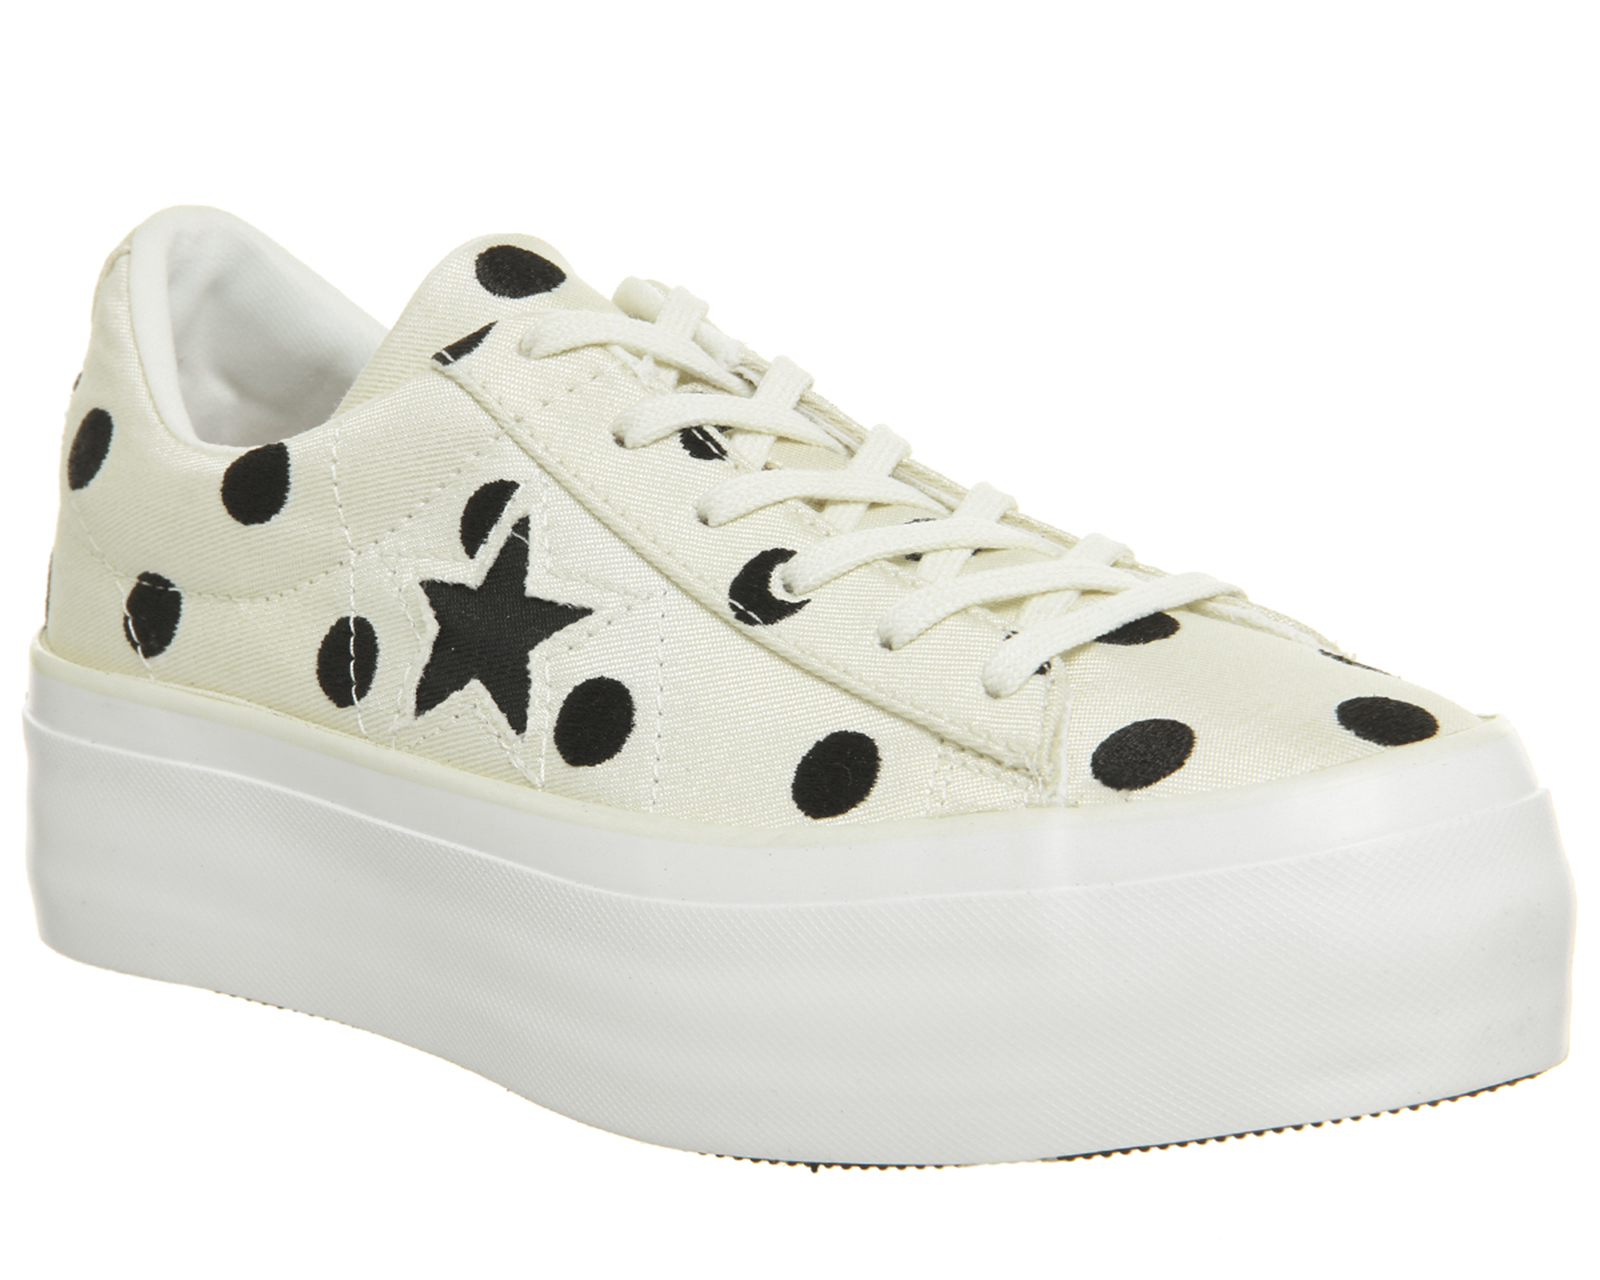 76de3133ade2 Sentinel Thumbnail 1. Sentinel Womens Converse One Star Platforms Egret  Black White ...